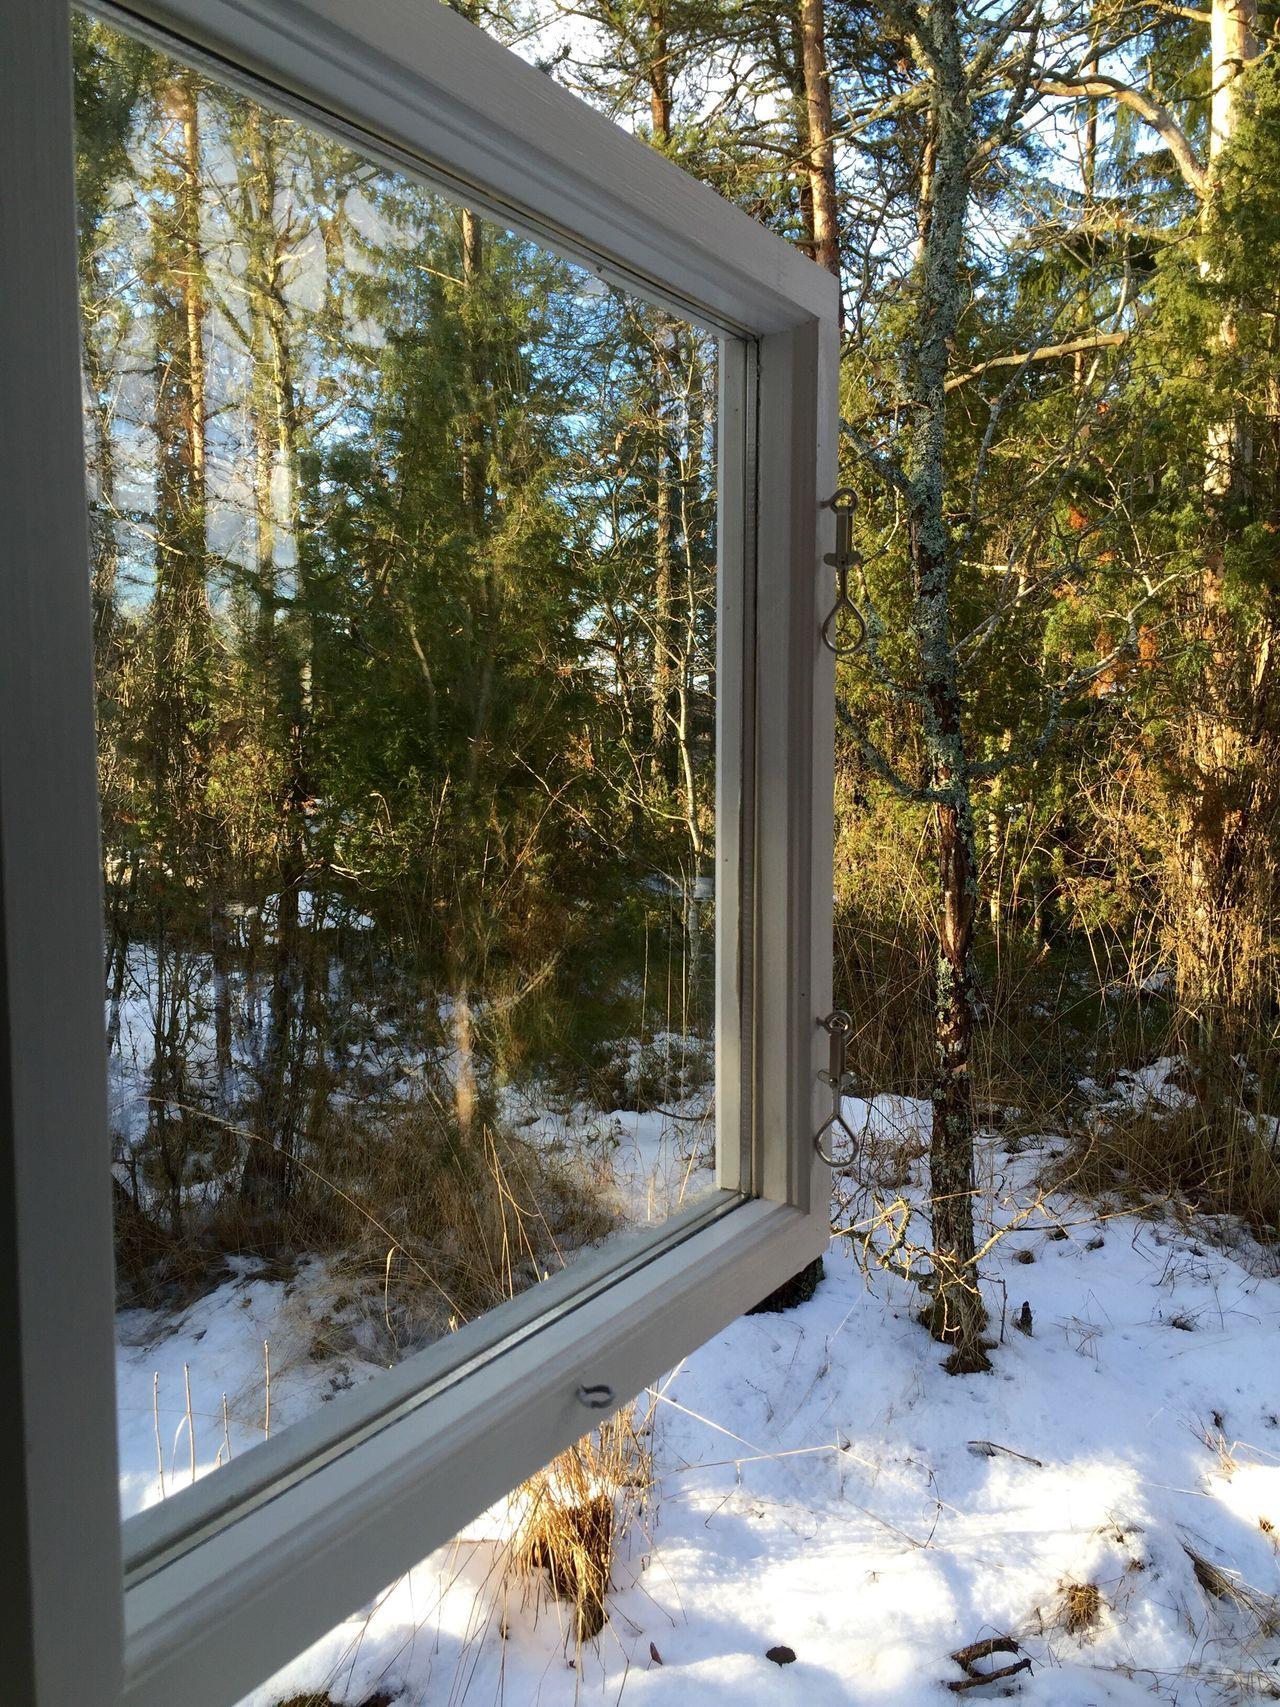 My Window view Window View Forest My Surroundings Peacefull Peaceful And Quiet Relaxing Taking Photos Enjoying Life Snow Relaxing Winter In The Forest